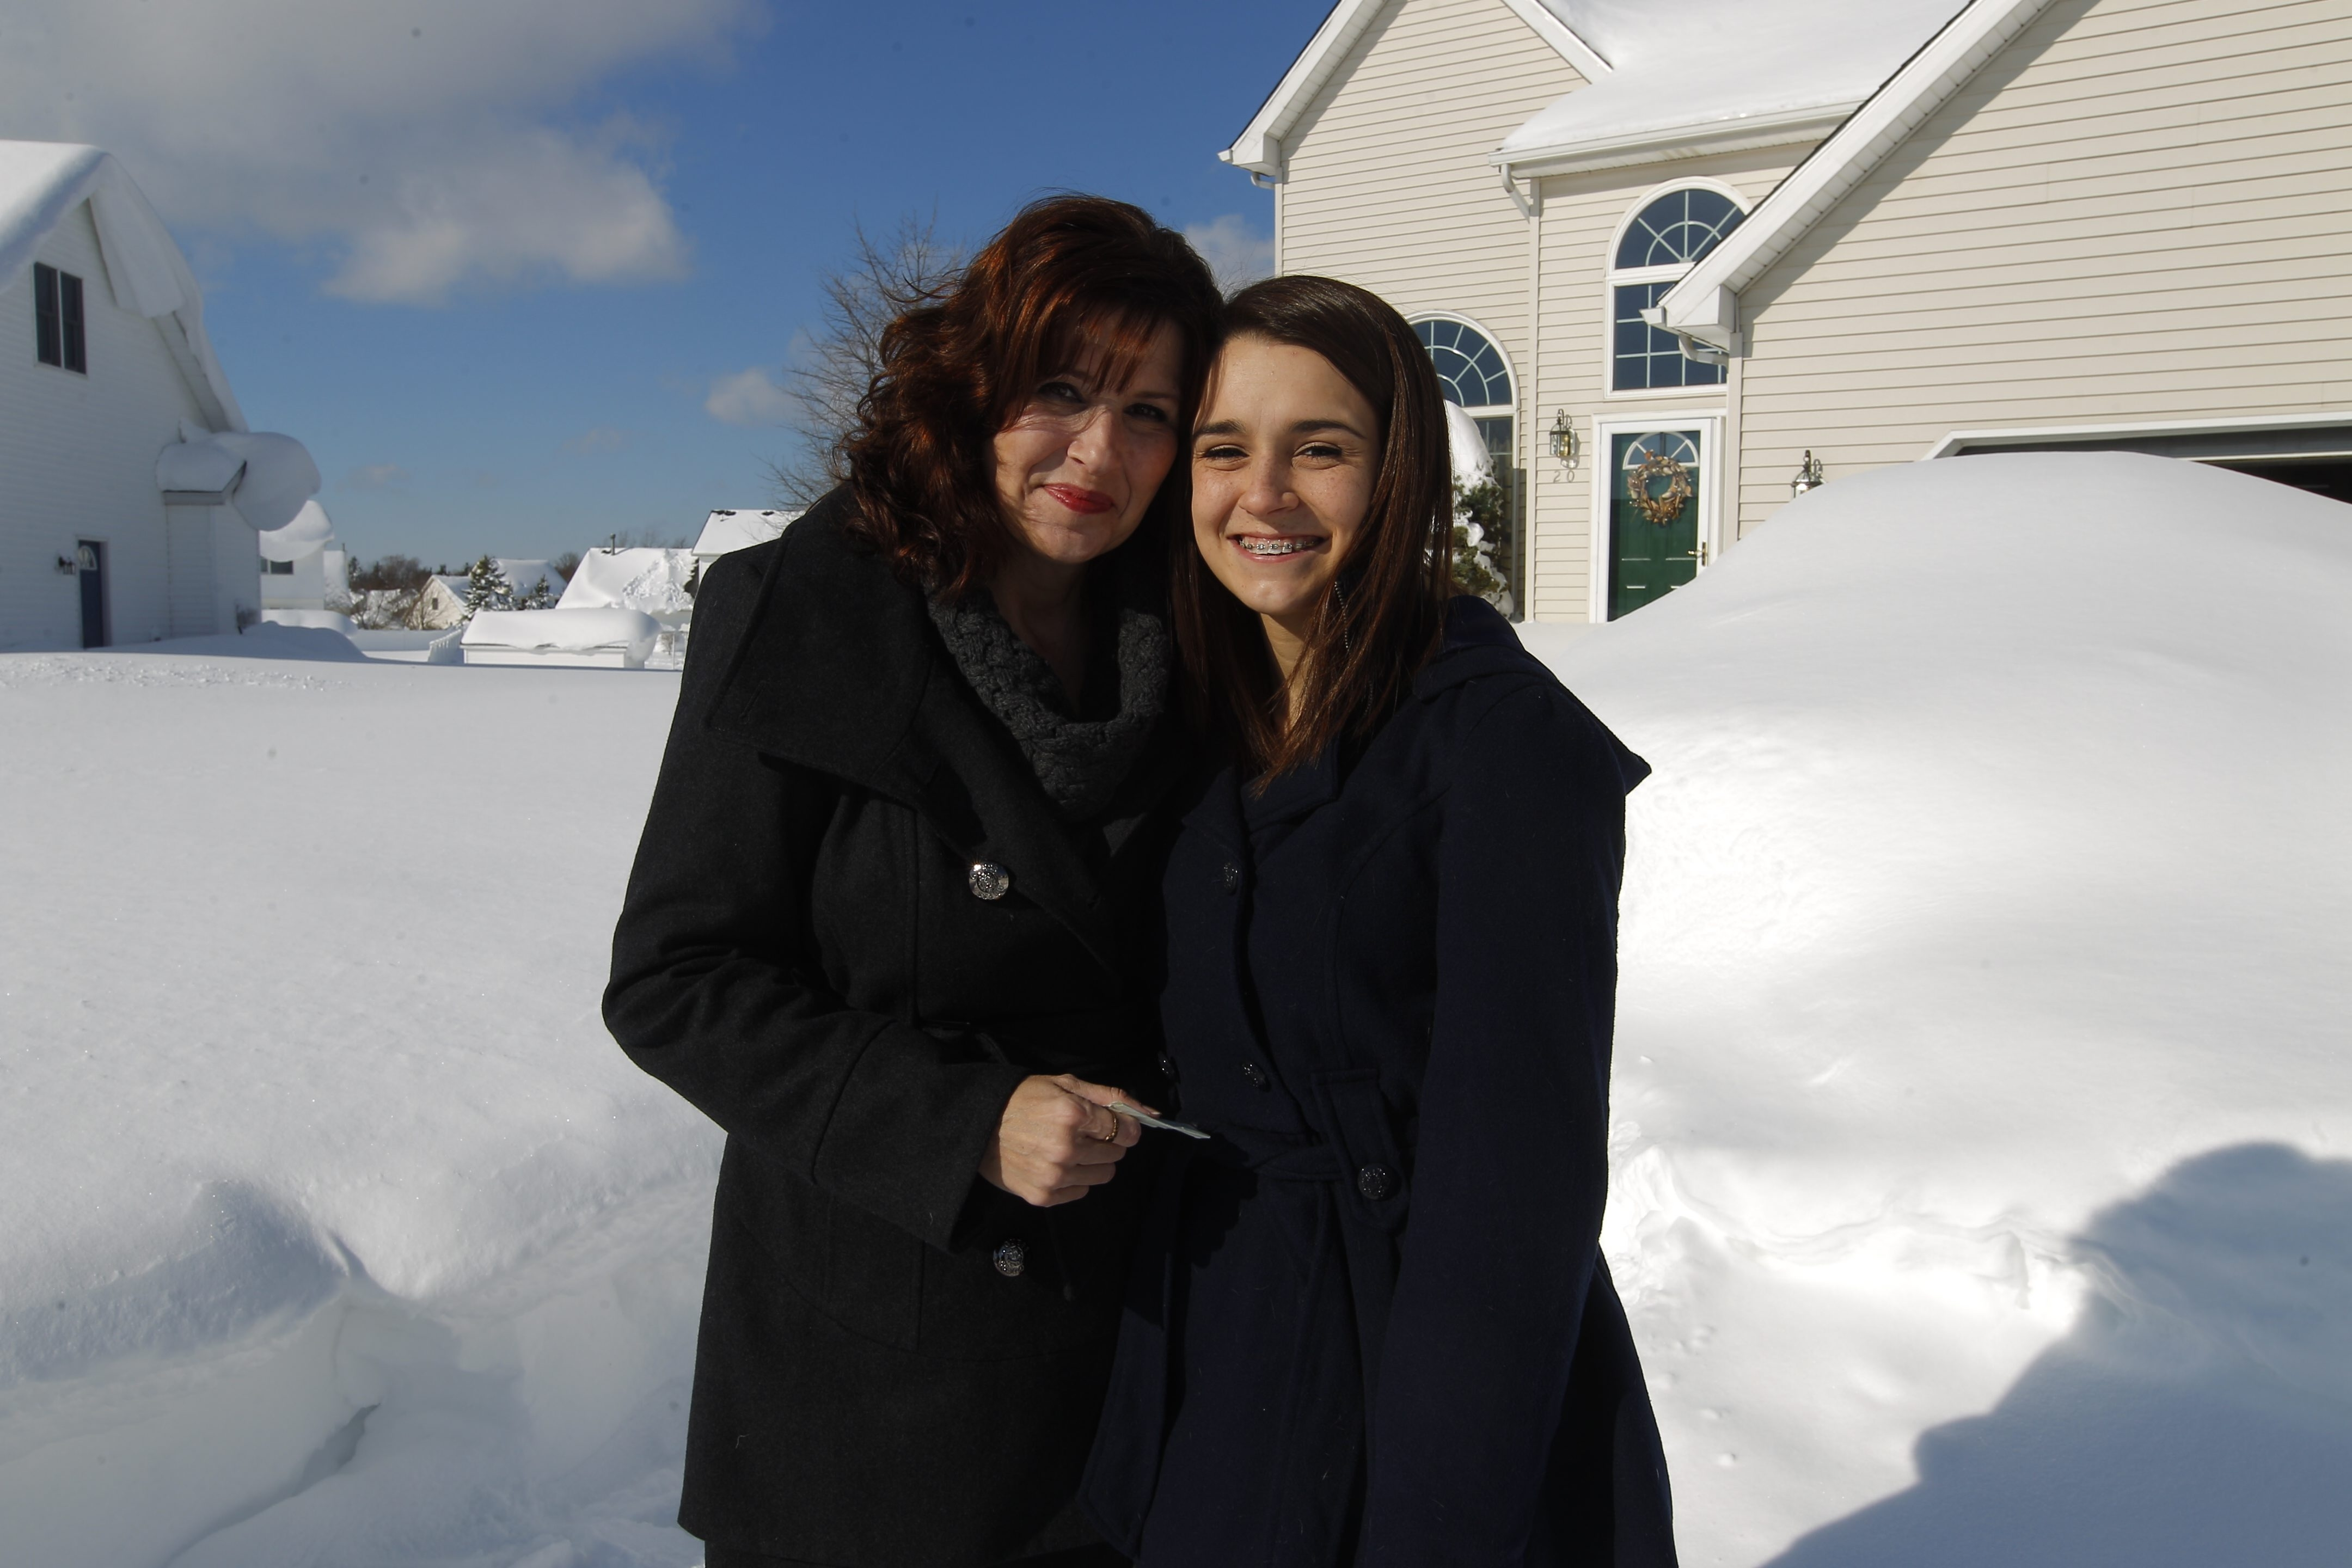 Karen Rossi was happily reunited with her daughter, Madelyn, 17, after spending 13 hours trapped in a snowbank in her car.